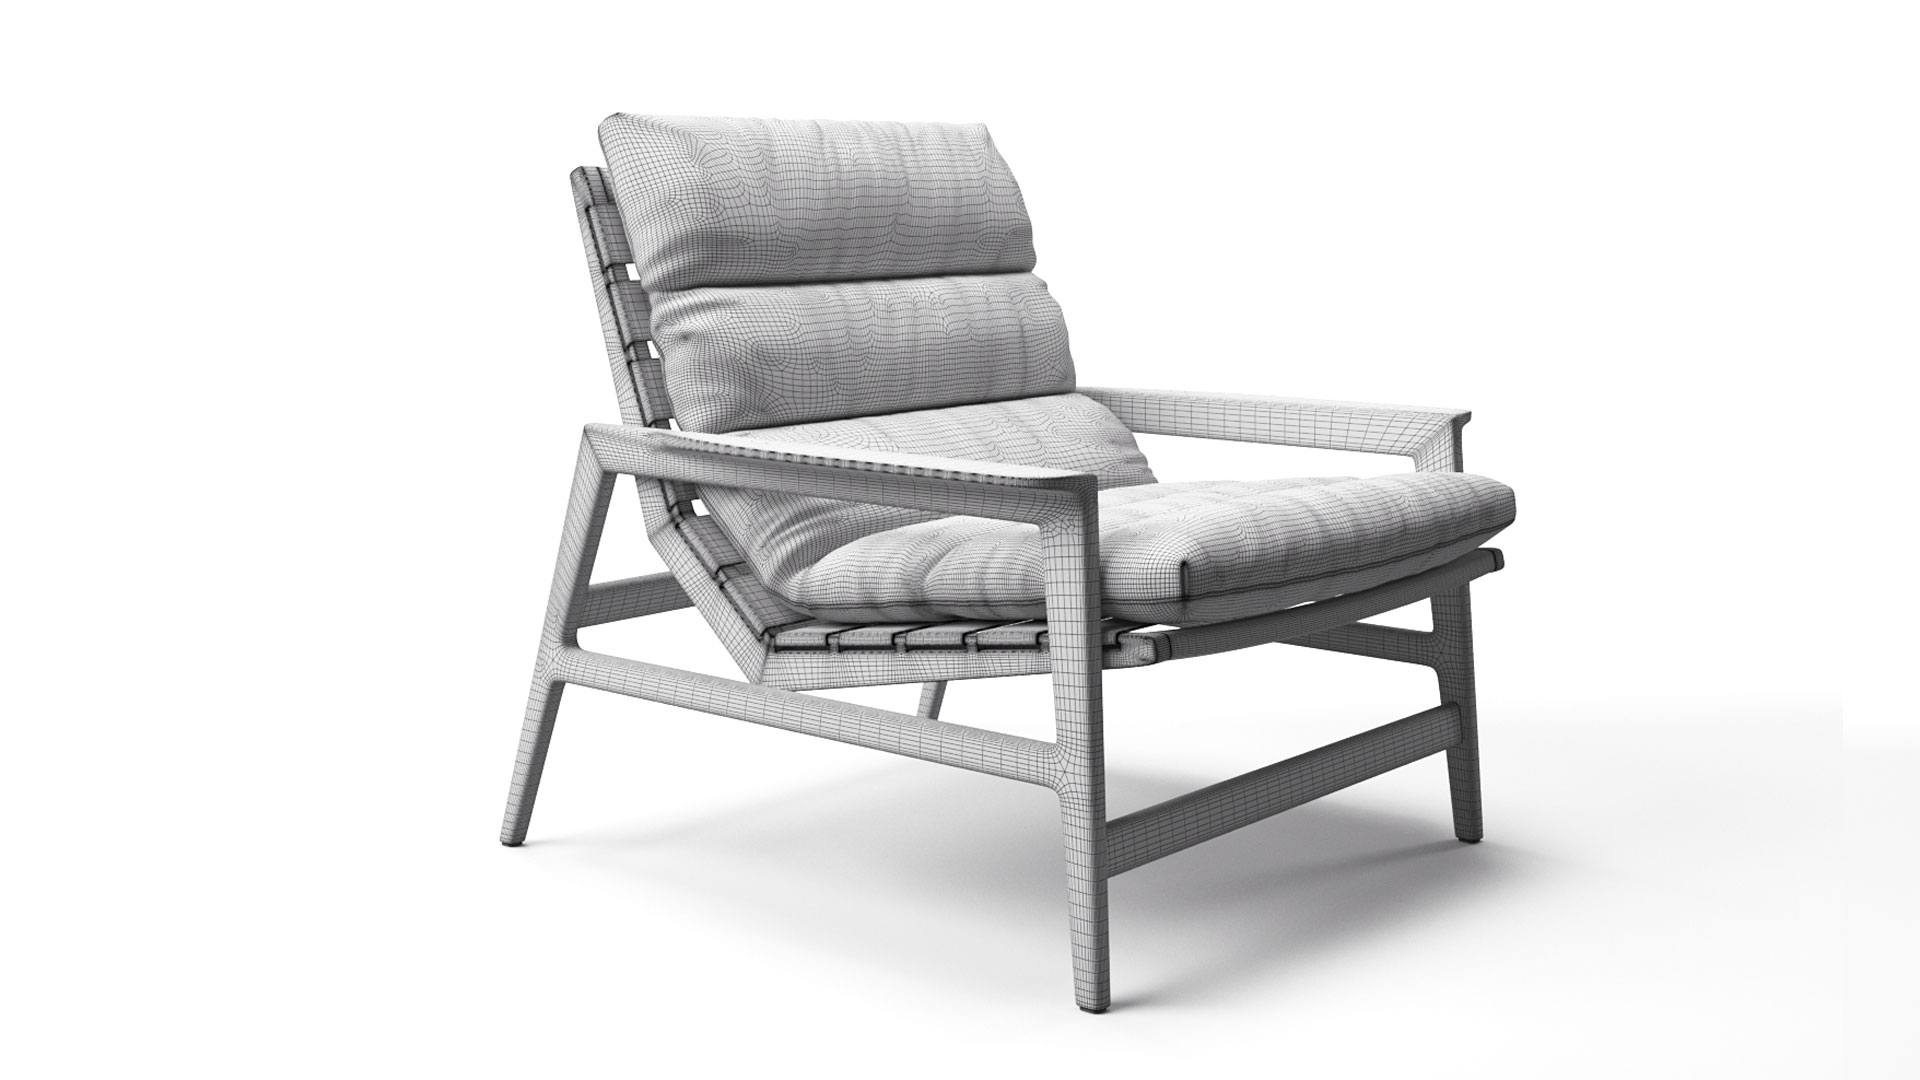 A 3D High-Poly 3D Model of a Chair on a White Background